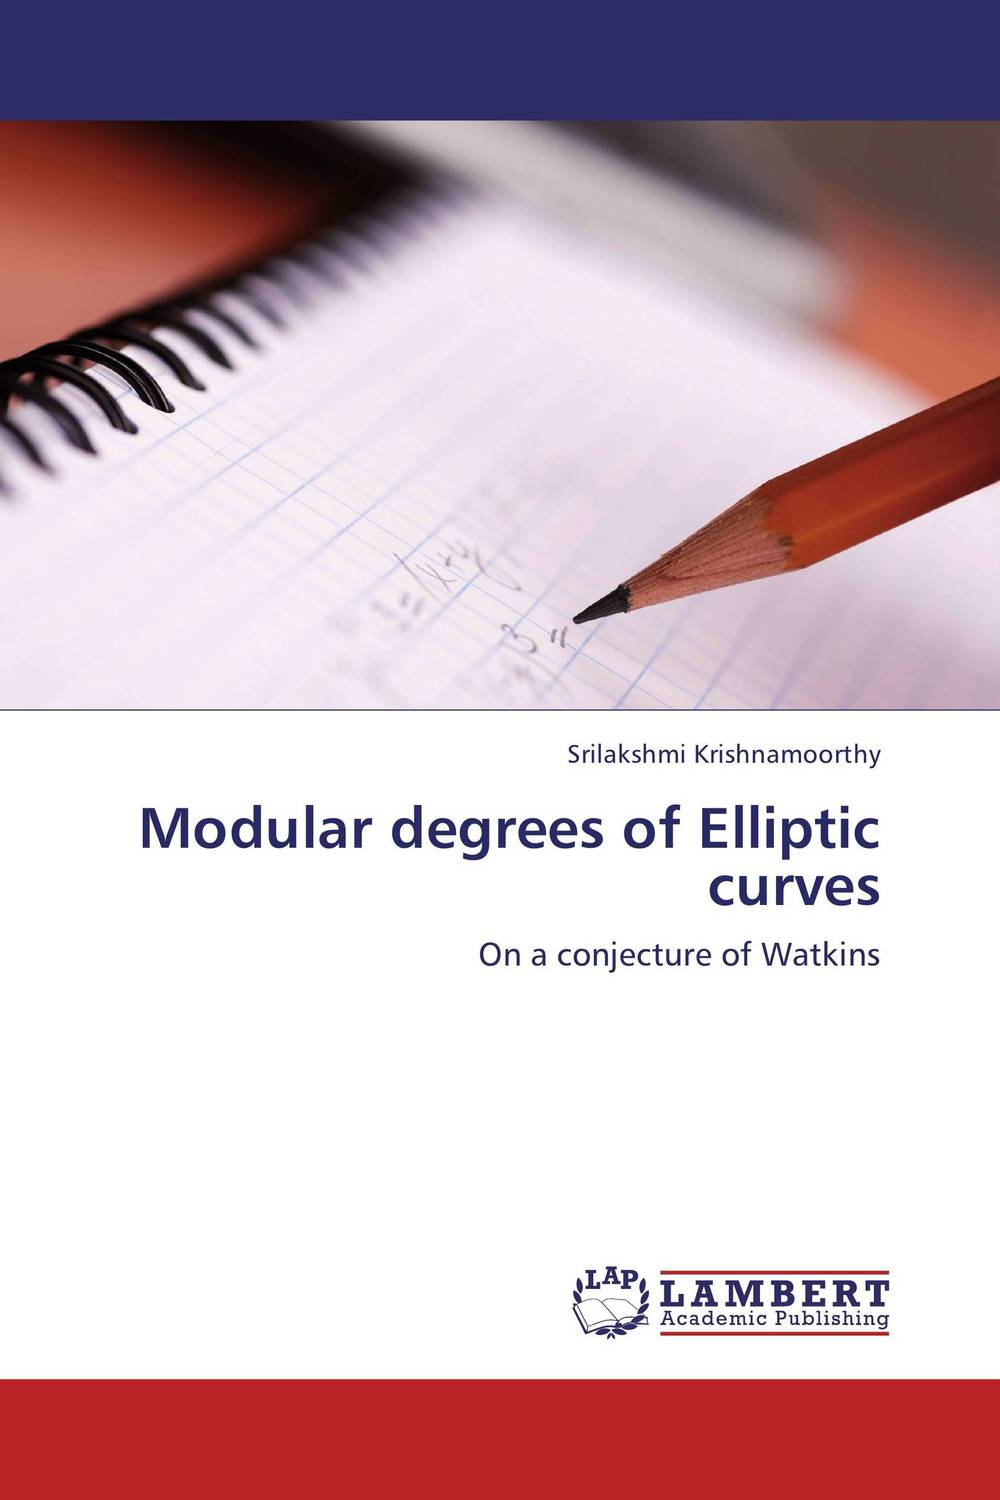 Modular degrees of Elliptic curves simulation of atm using elliptic curve cryptography in matlab